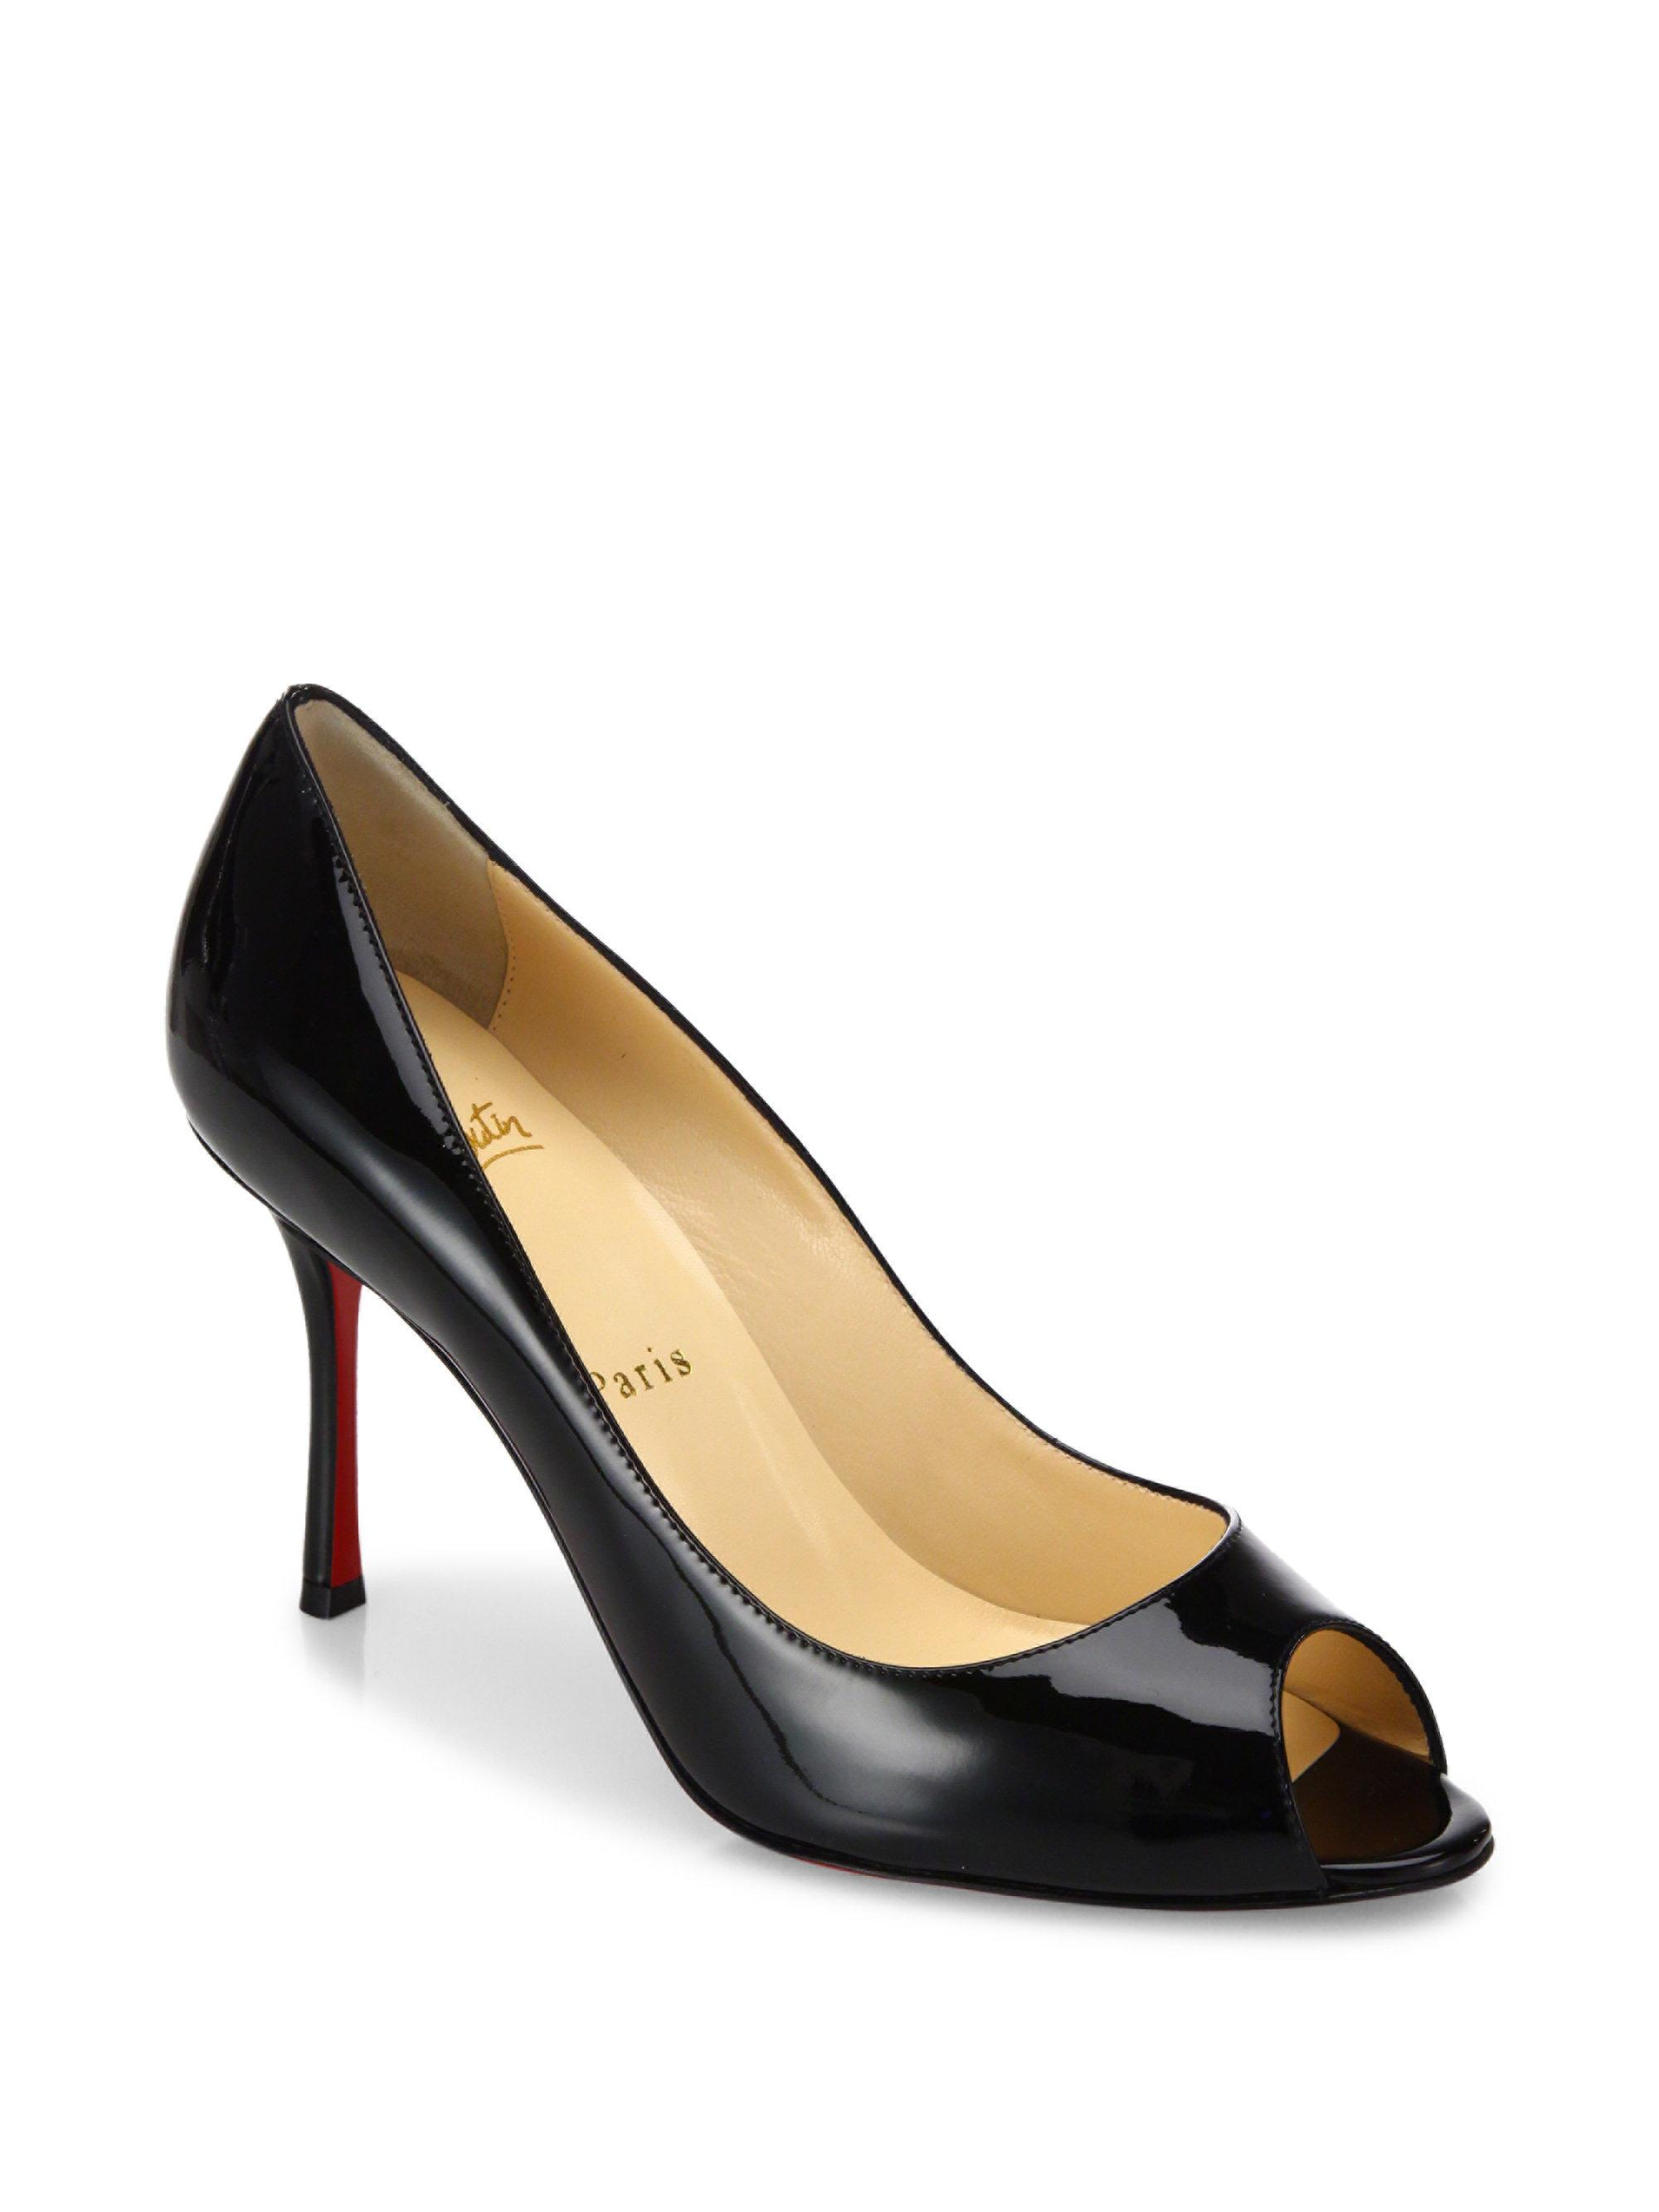 773fcd42a88 Lyst - Christian Louboutin Yootish 85 Patent Leather Peep Toe Pumps ...